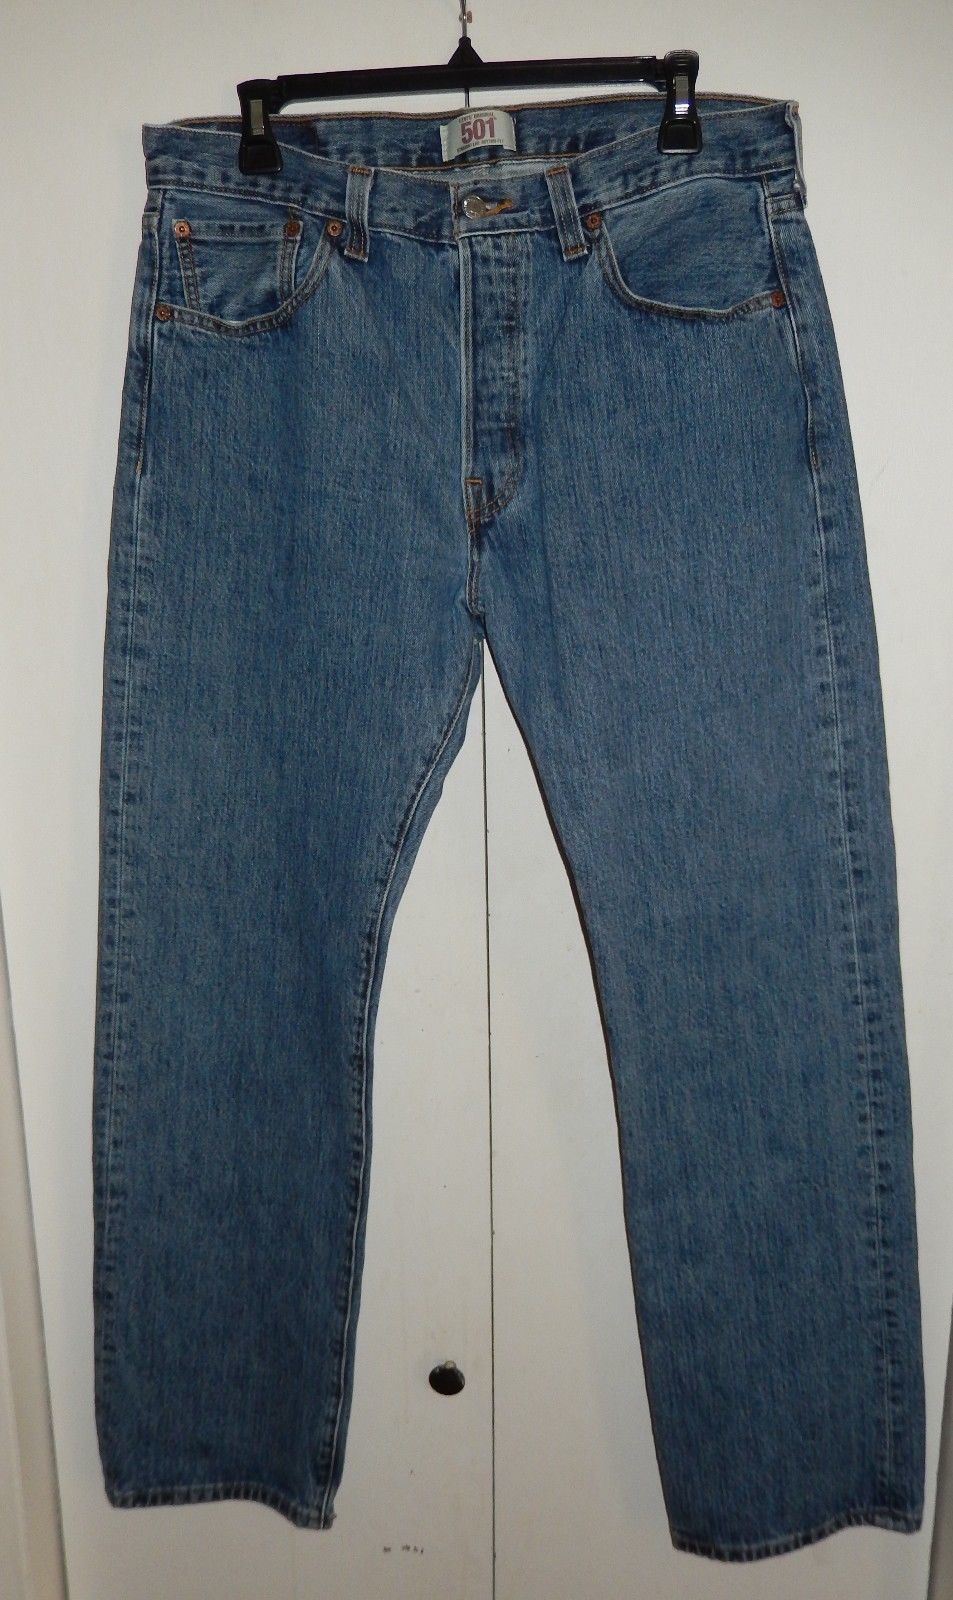 Levi's Original 501 Button Fly Straight Leg Jeans Size 34 x 31 1/2 - $21.99